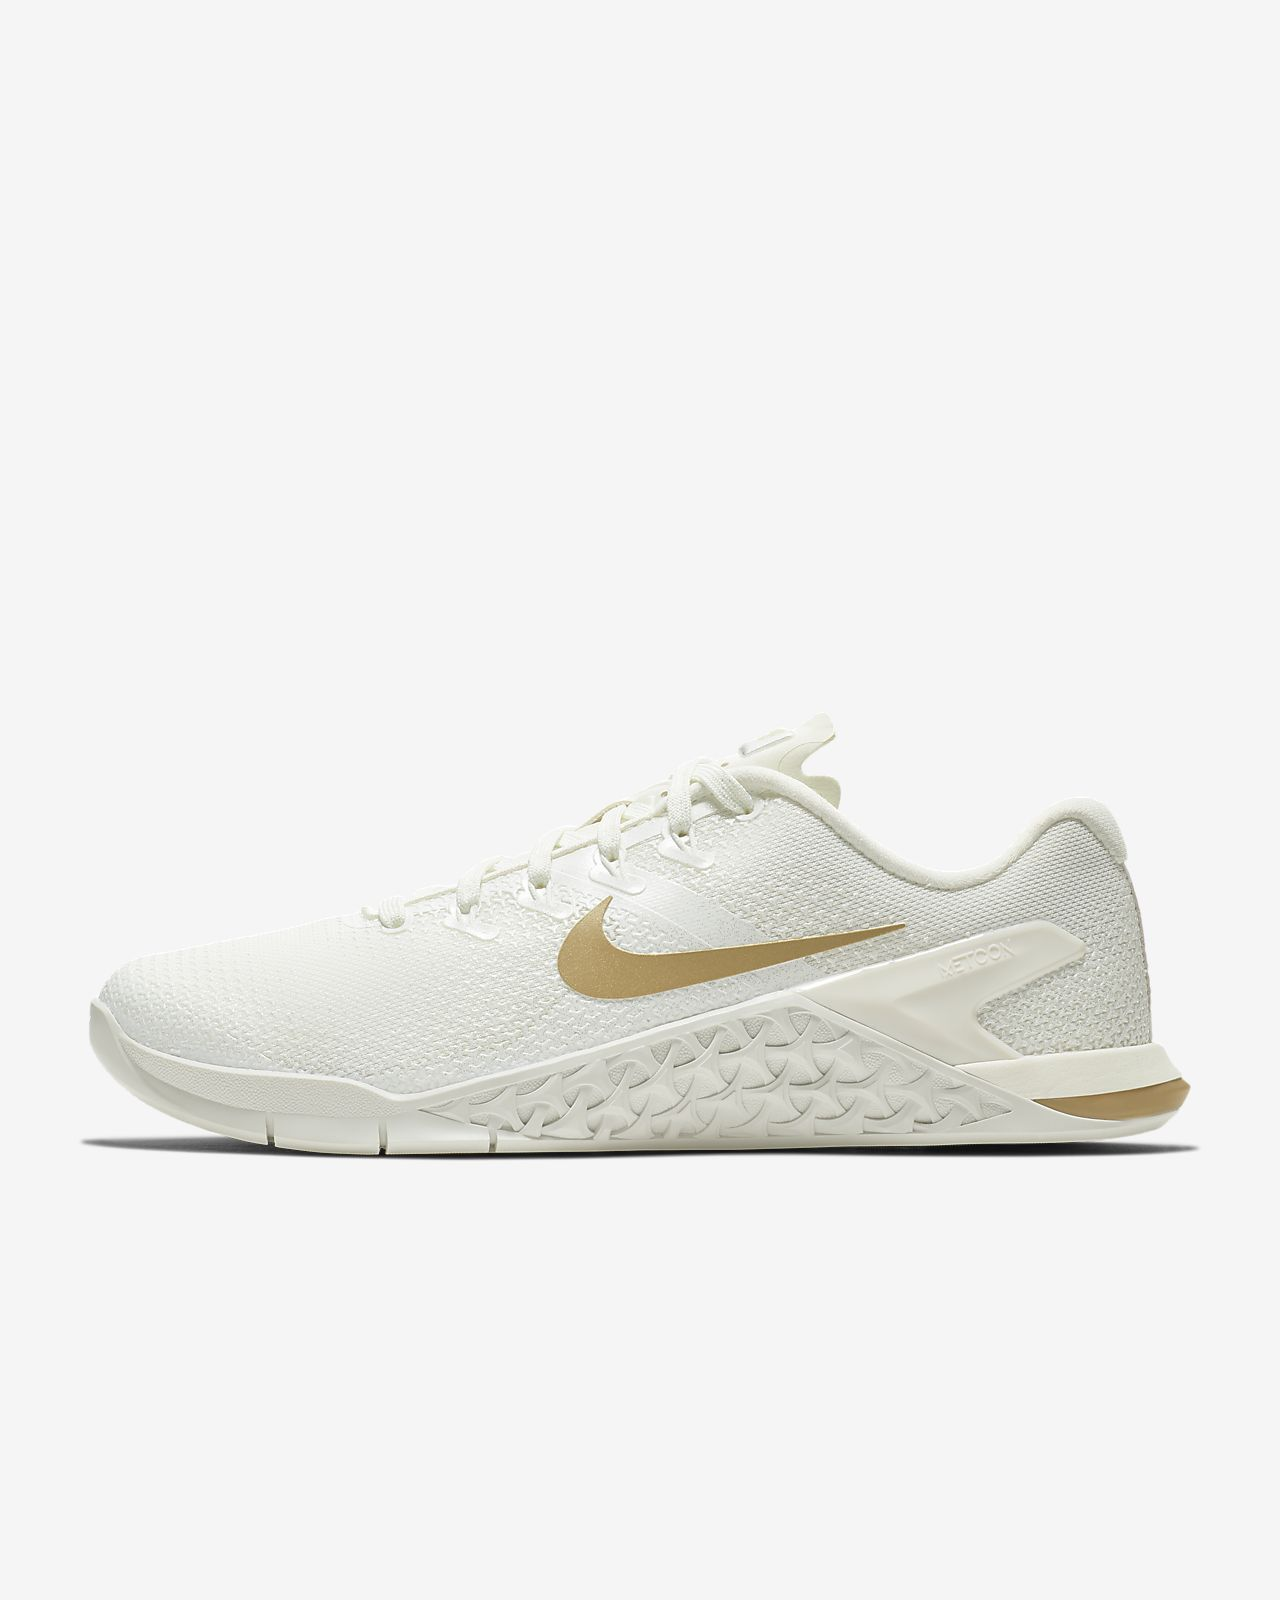 reputable site 903c0 11a3d ... Nike Metcon 4 Champagne Womens Cross-TrainingWeightlifting Shoe